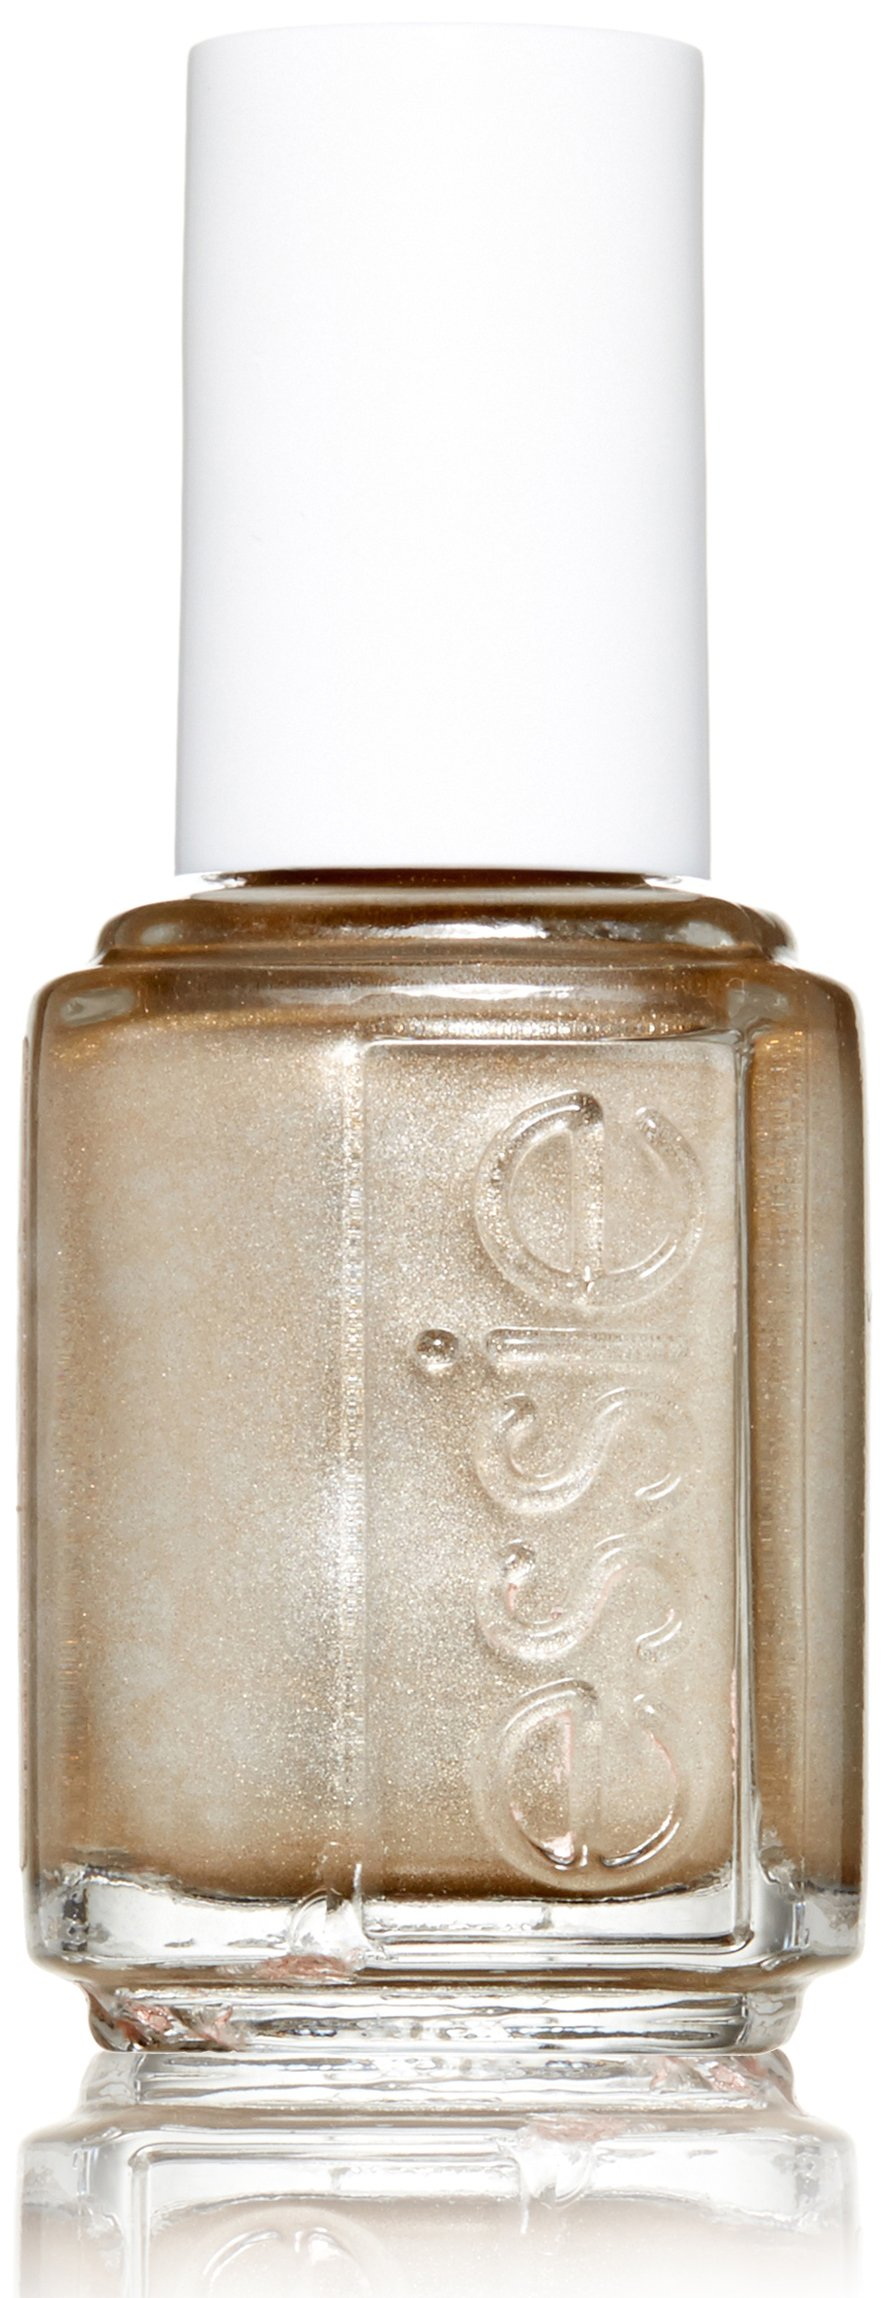 Amazon.com : essie nail color, Beyond Crazy, metallics, 0.46 fl. oz ...